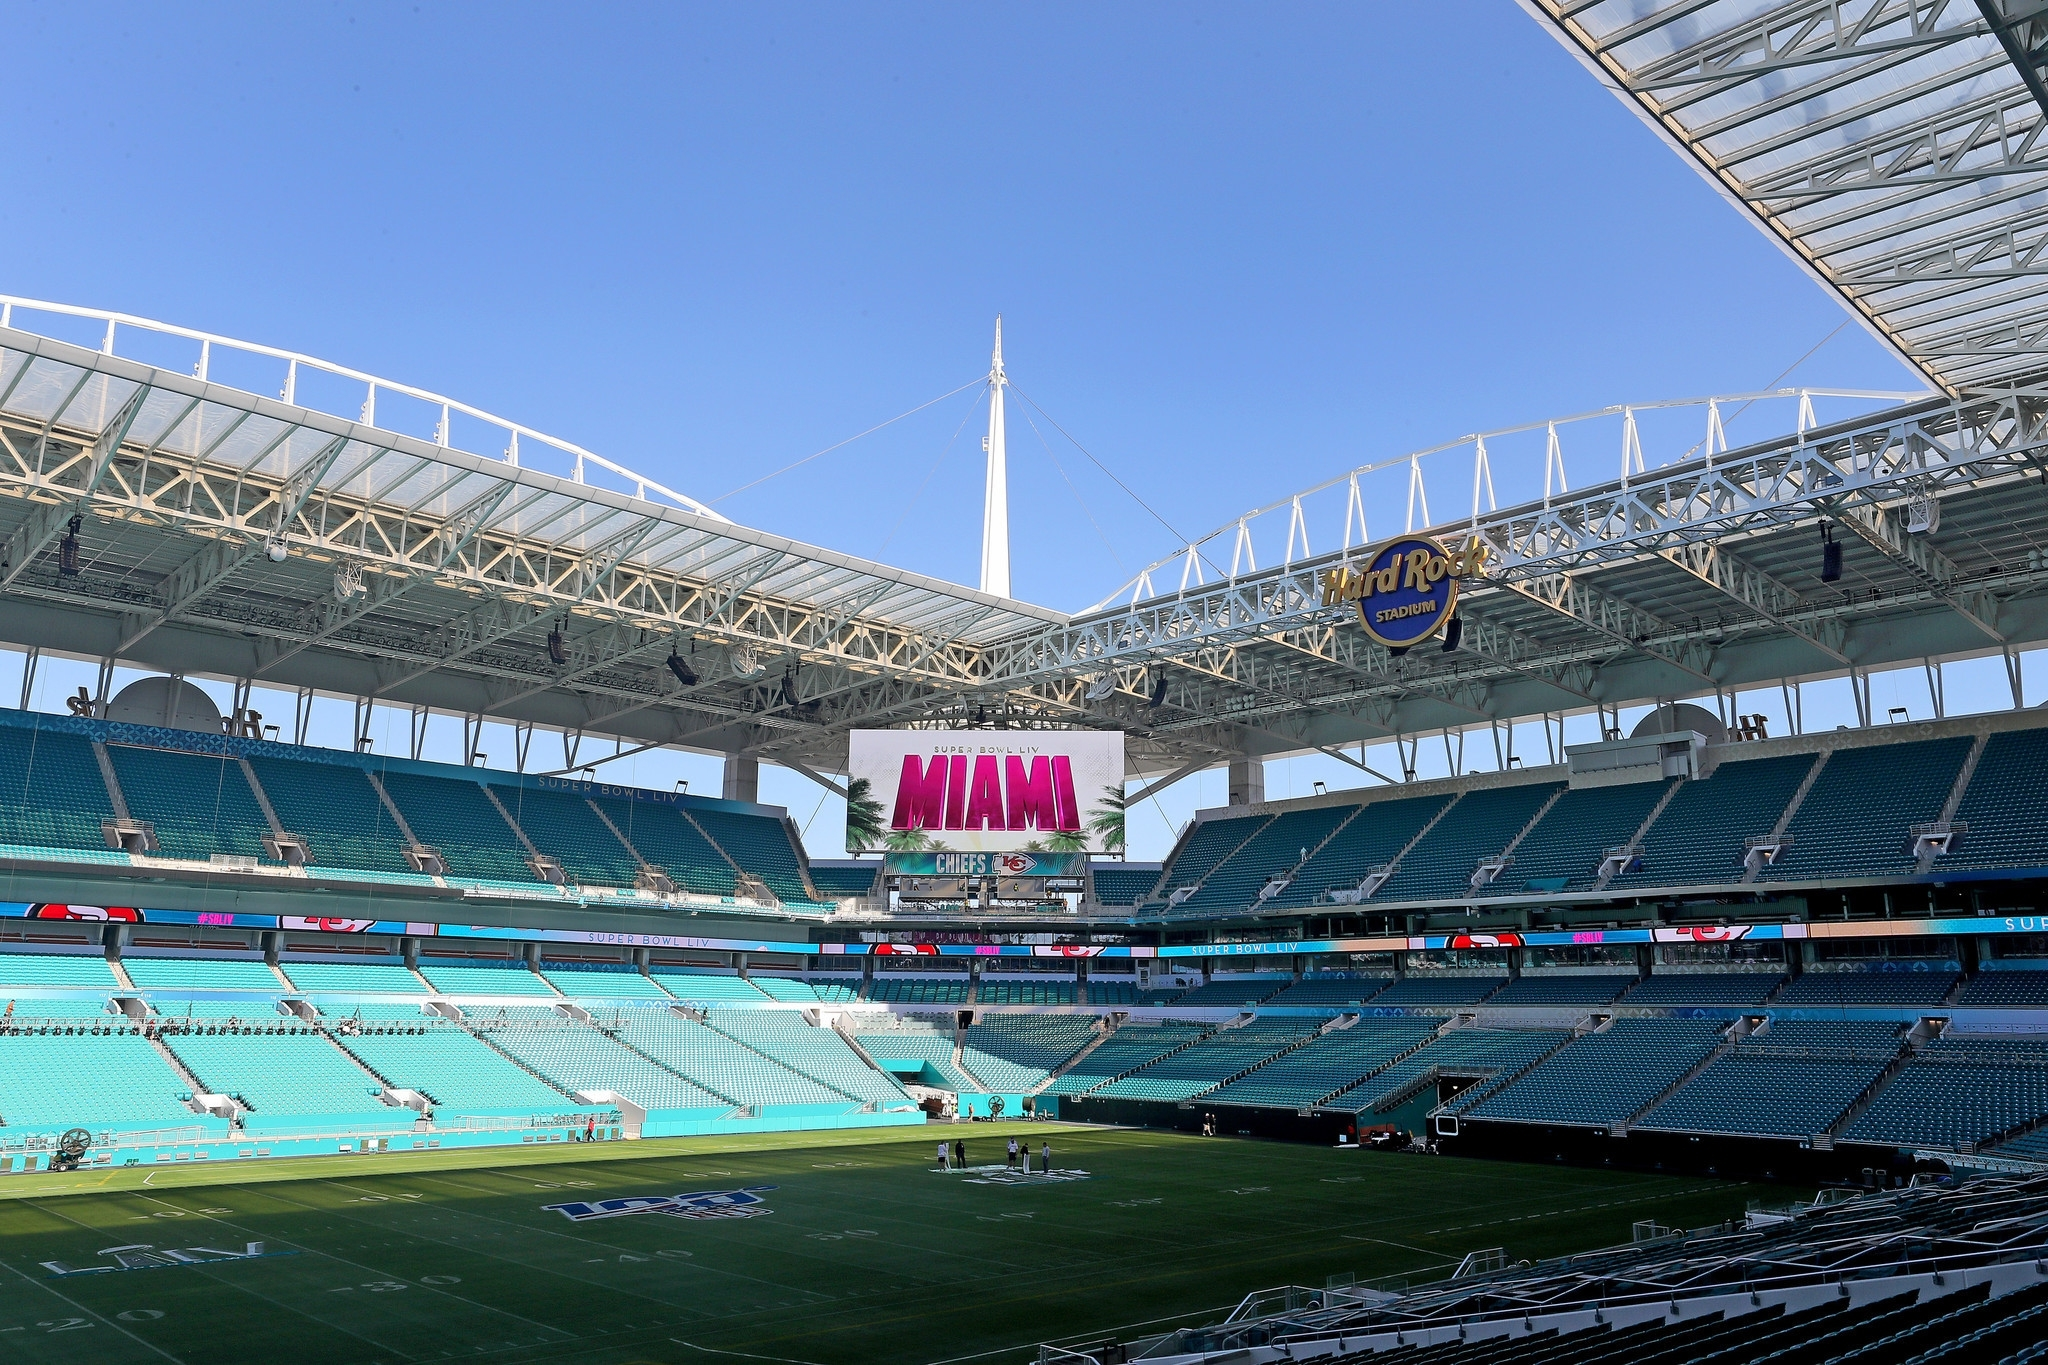 Super Bowl Week In Miami - What Could Go Wrong? - South inside Miami Super Bowl Riot